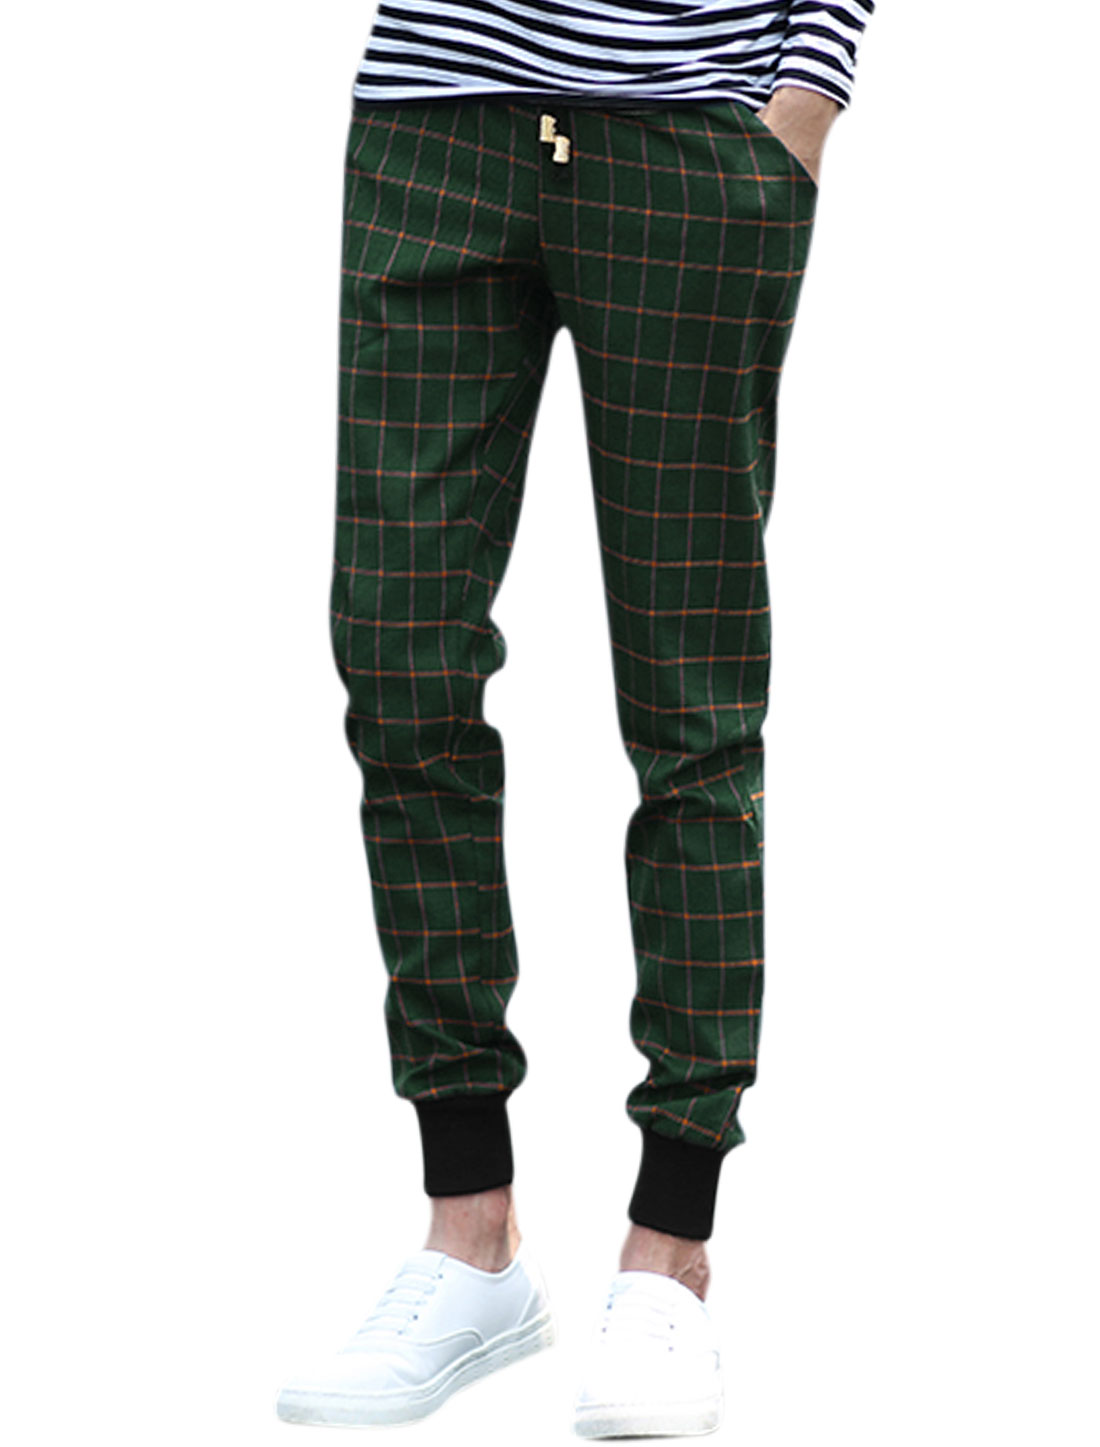 Men Plaids Hip Pockets Tapered Drawstring Waist Trousers Green W30